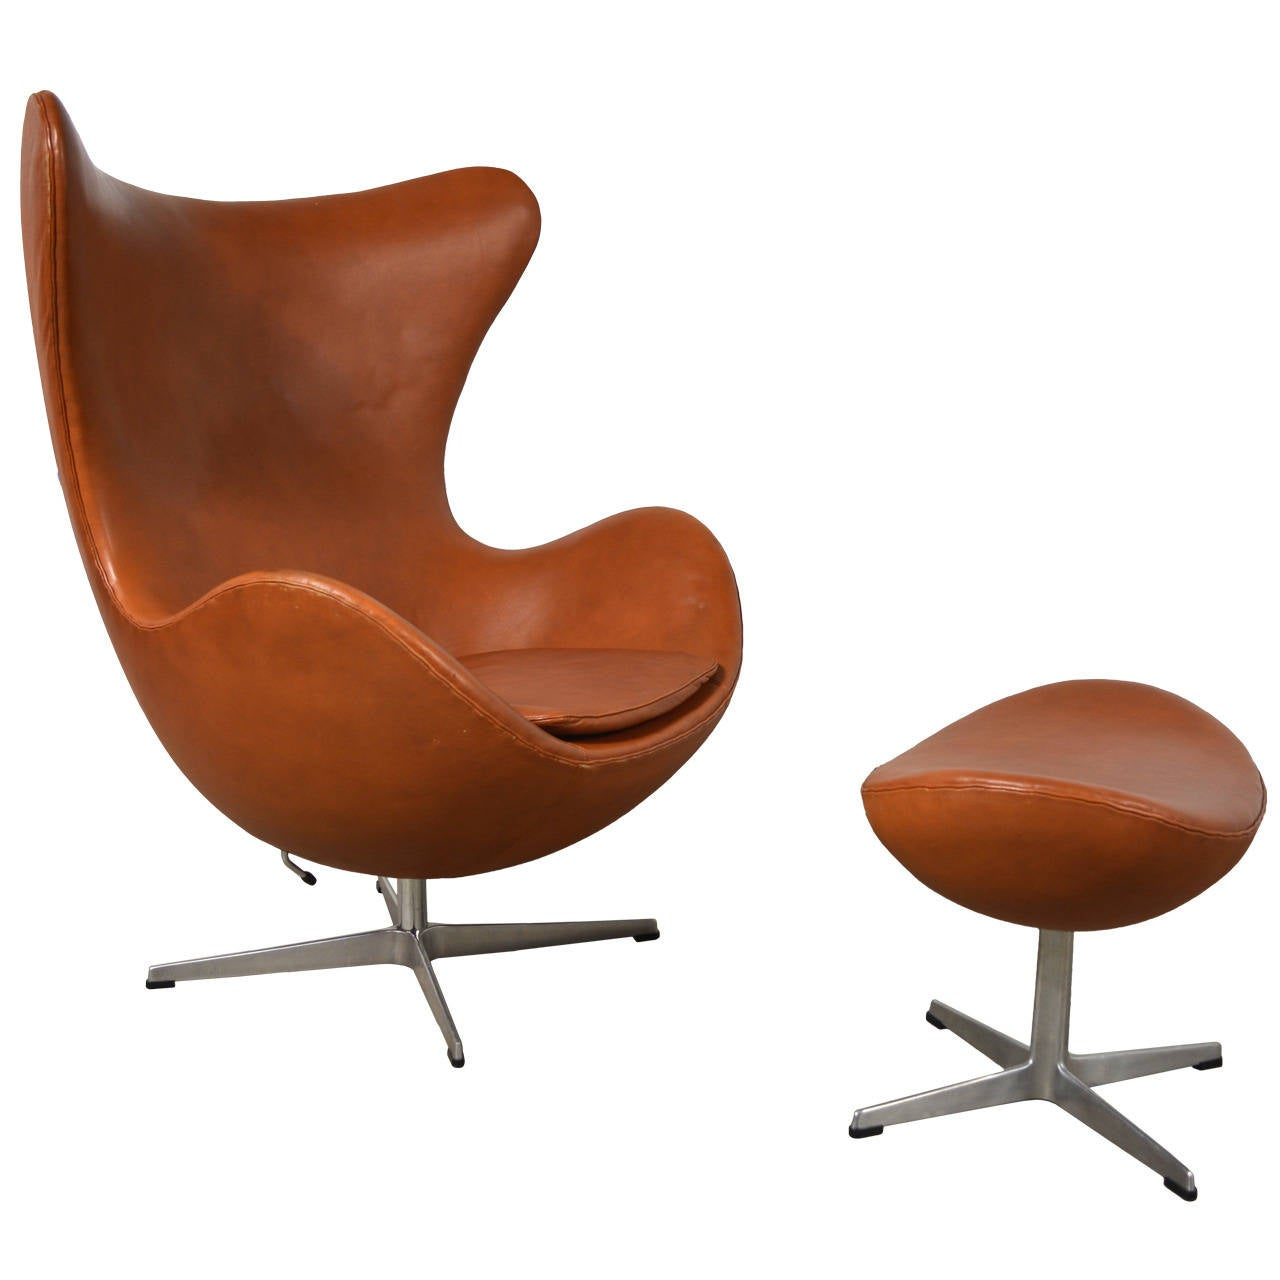 Pouf Design Egg Pouf Jacobsen : Arne jacobsen egg chair and ottoman for sale at stdibs